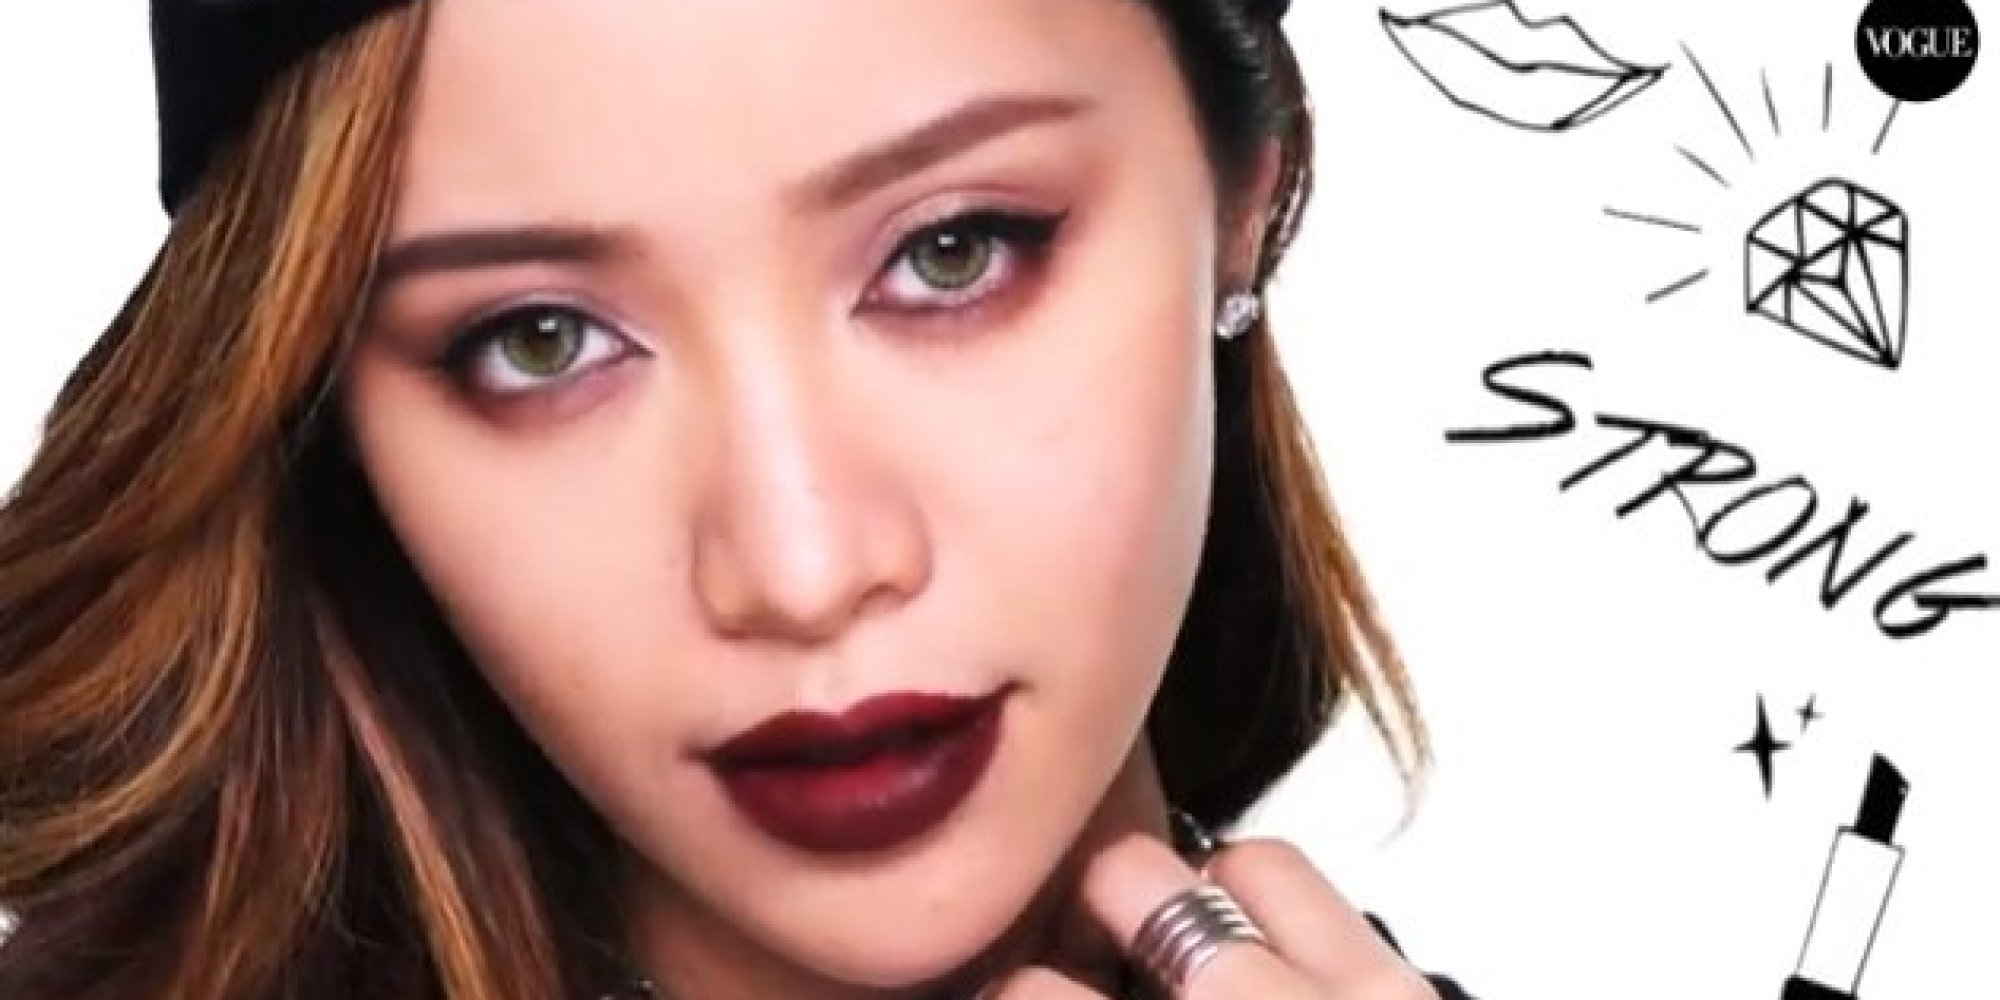 Michelle Phan Channels Rihanna's Bad Girl Look In Makeup ...